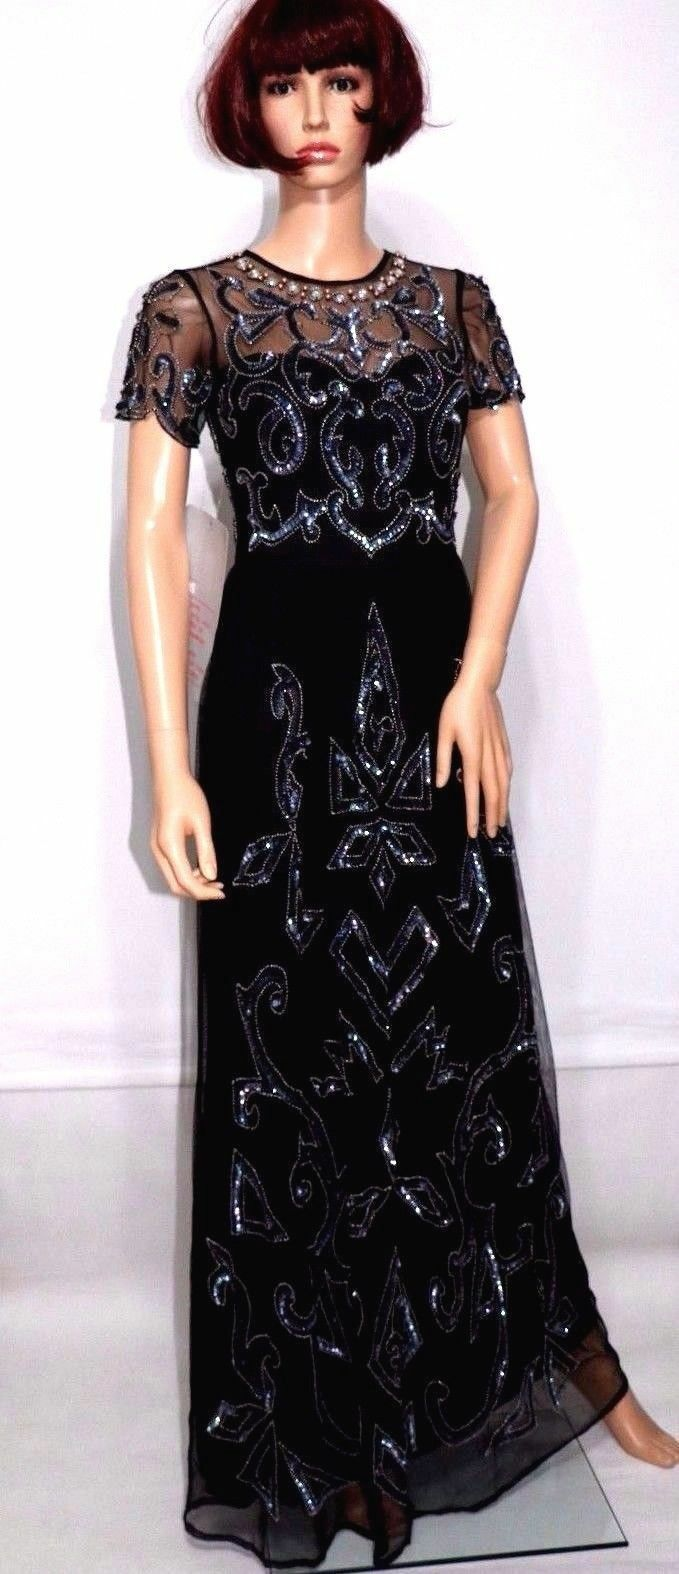 ASOS Embellished Pretty Gothic Maxi Evening Party Cocktail Dress  UK8 EU36